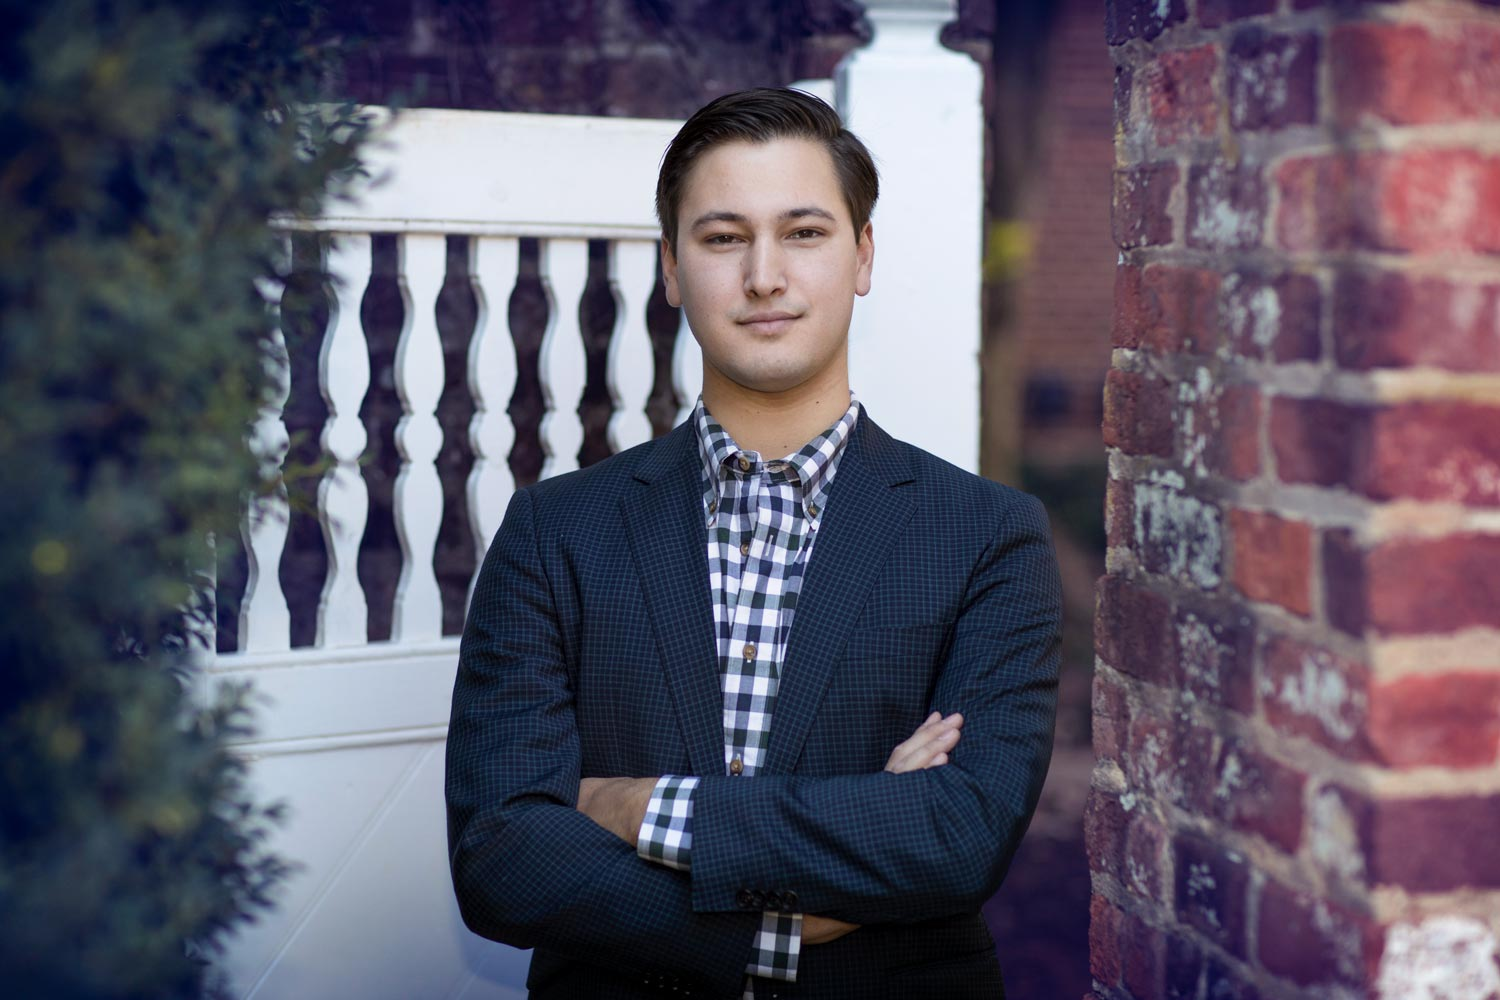 John Brake will pursue a one-year master's degree in global affairs in China with a Schwarzman Scholarship.